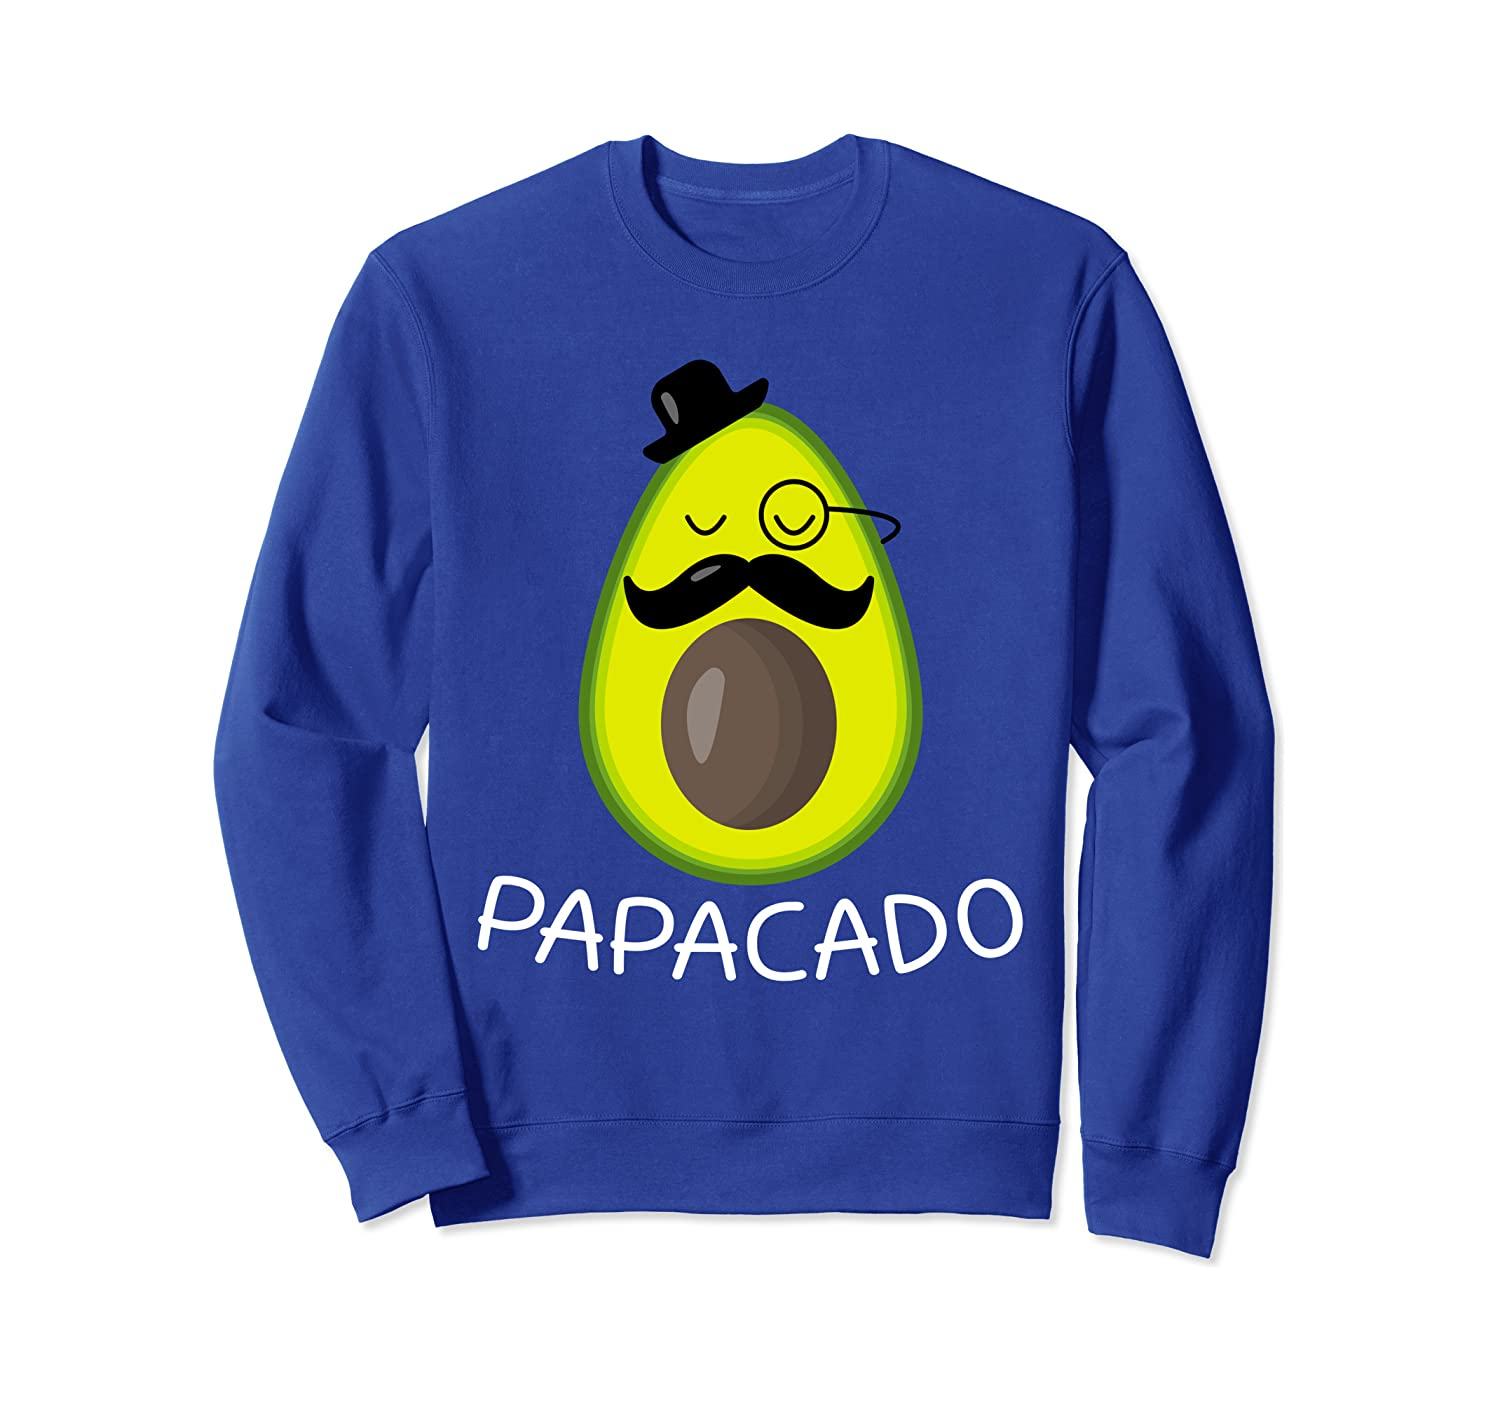 Avocado Funny Papacado Cinco De Mayo Avocado Costume Vegan Sweatshirt Unisex Tshirt